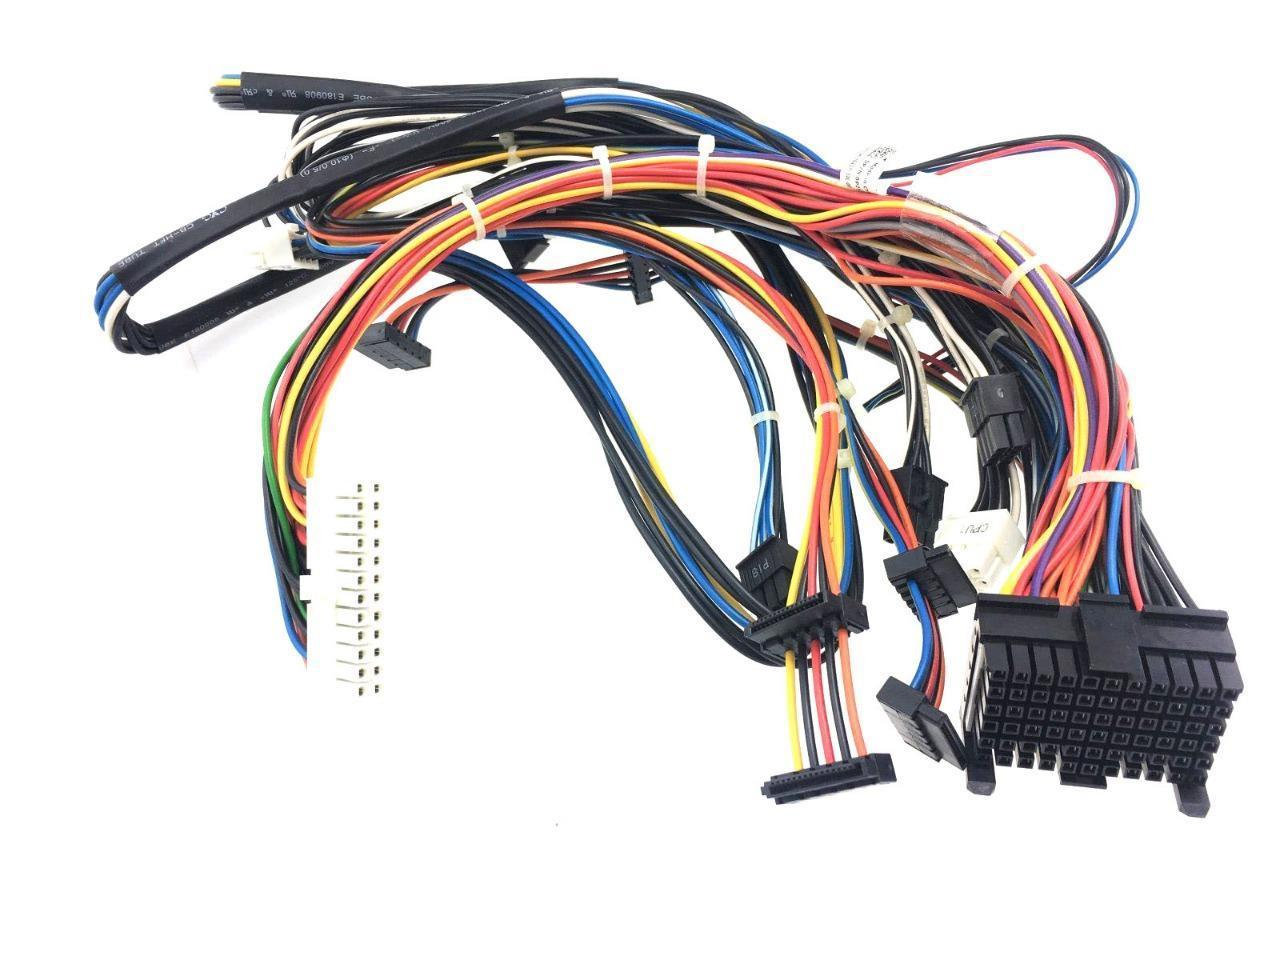 hight resolution of dell precision t7500 power supply wir end 9 7 2020 5 59 am wiring harness power antenna wiring harness power